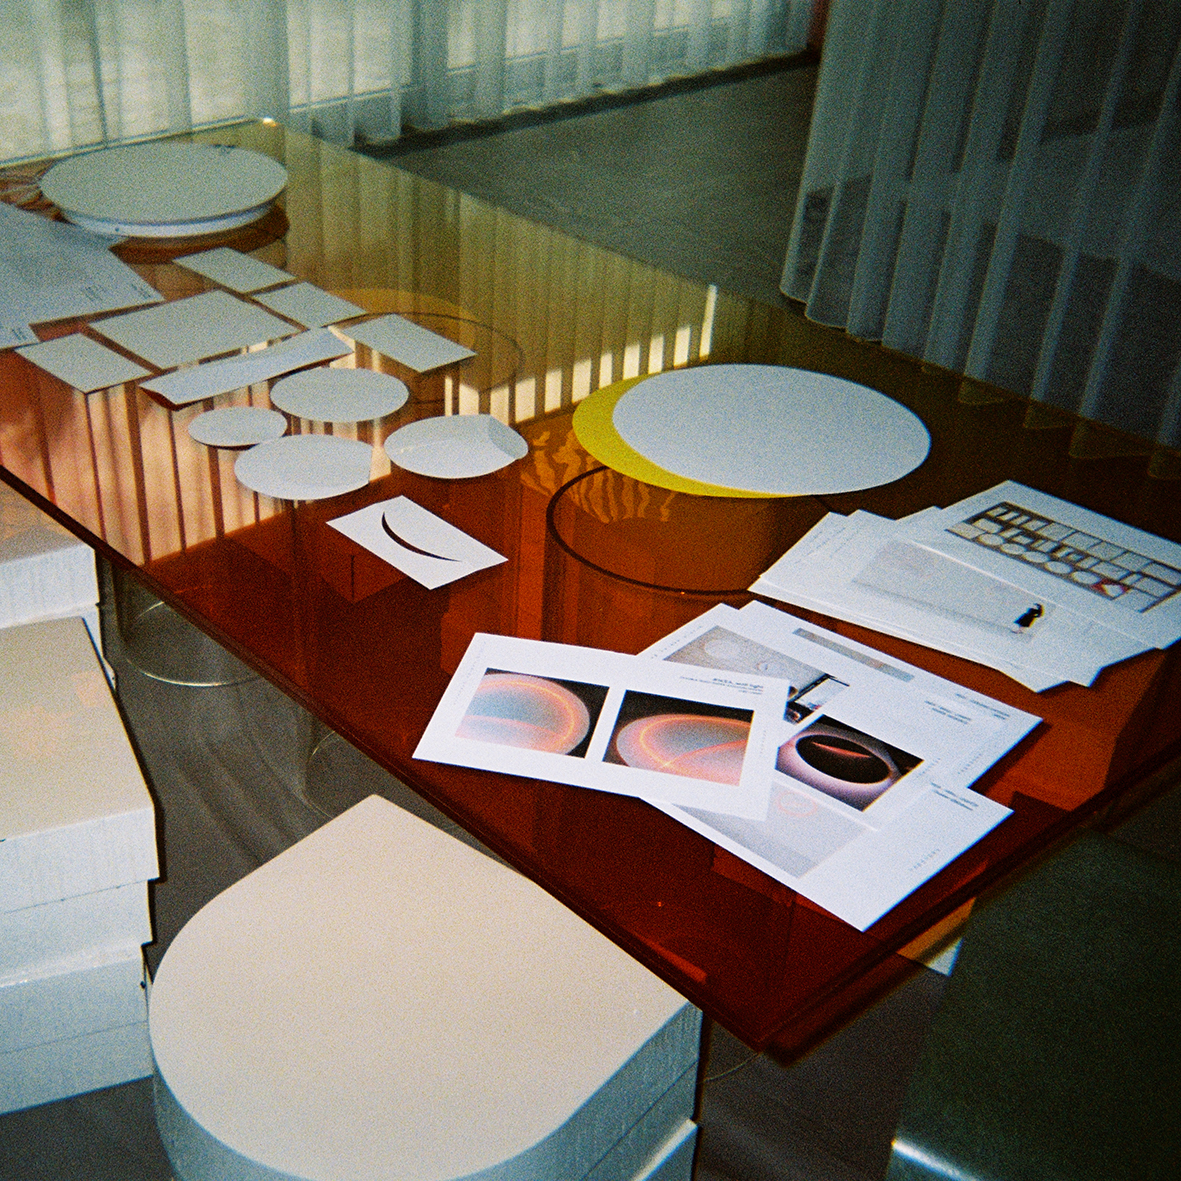 White boxes in piles beside an orange glass table, with a white wall lamp and pieces of paper on top.